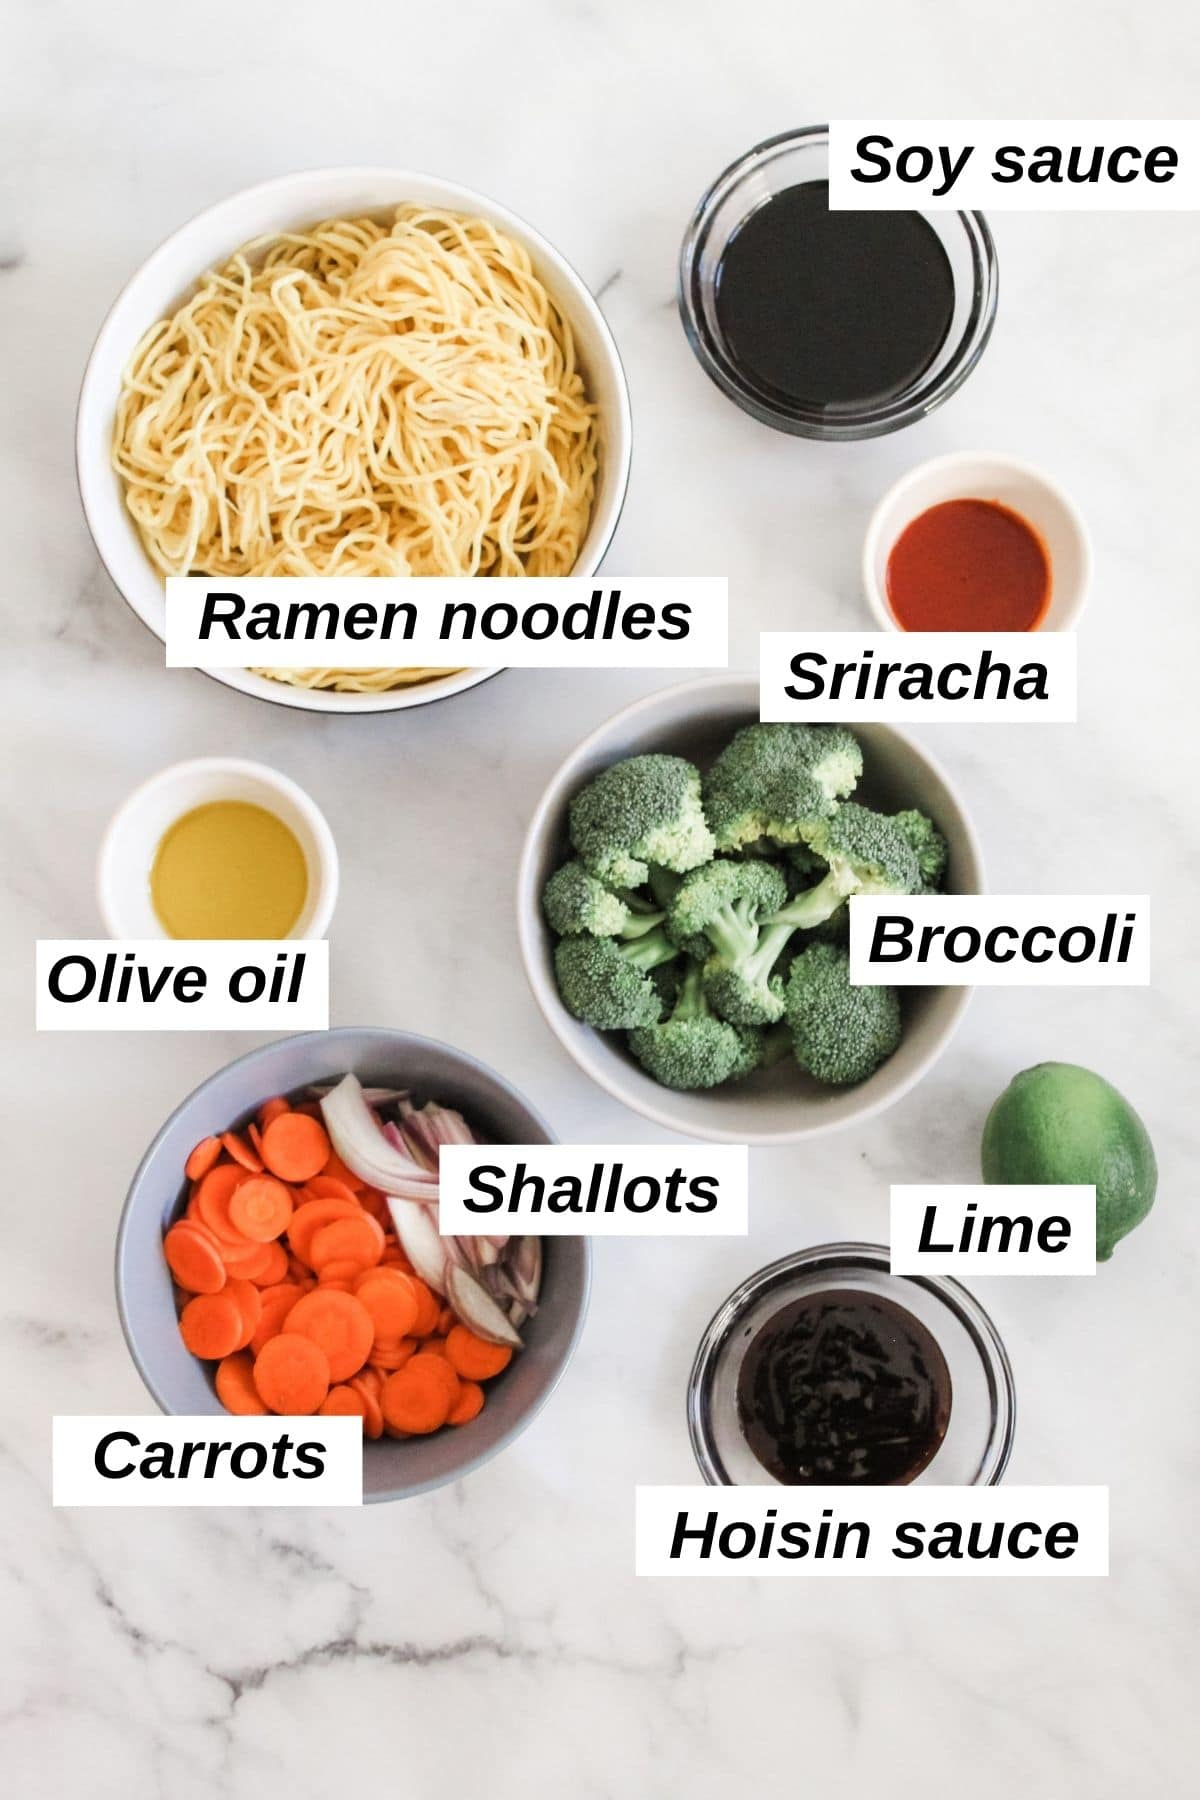 individual ingredients for stir fry vegan ramen on a marble background